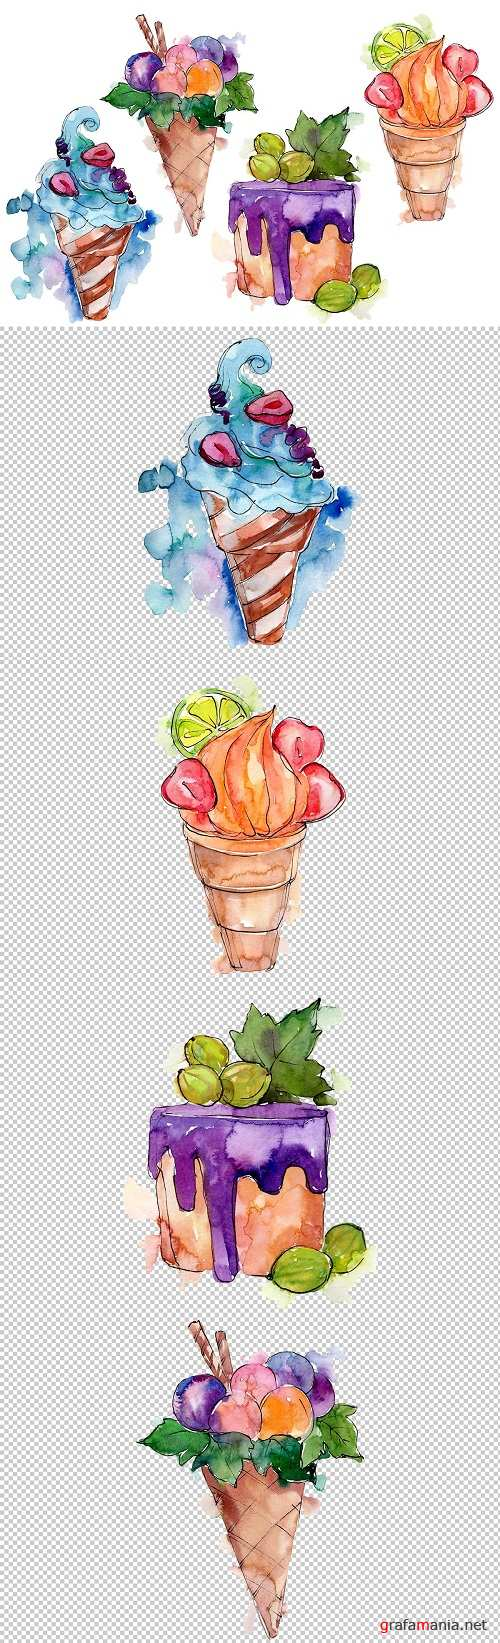 Fruit Dissert Watercolor png - 3459205